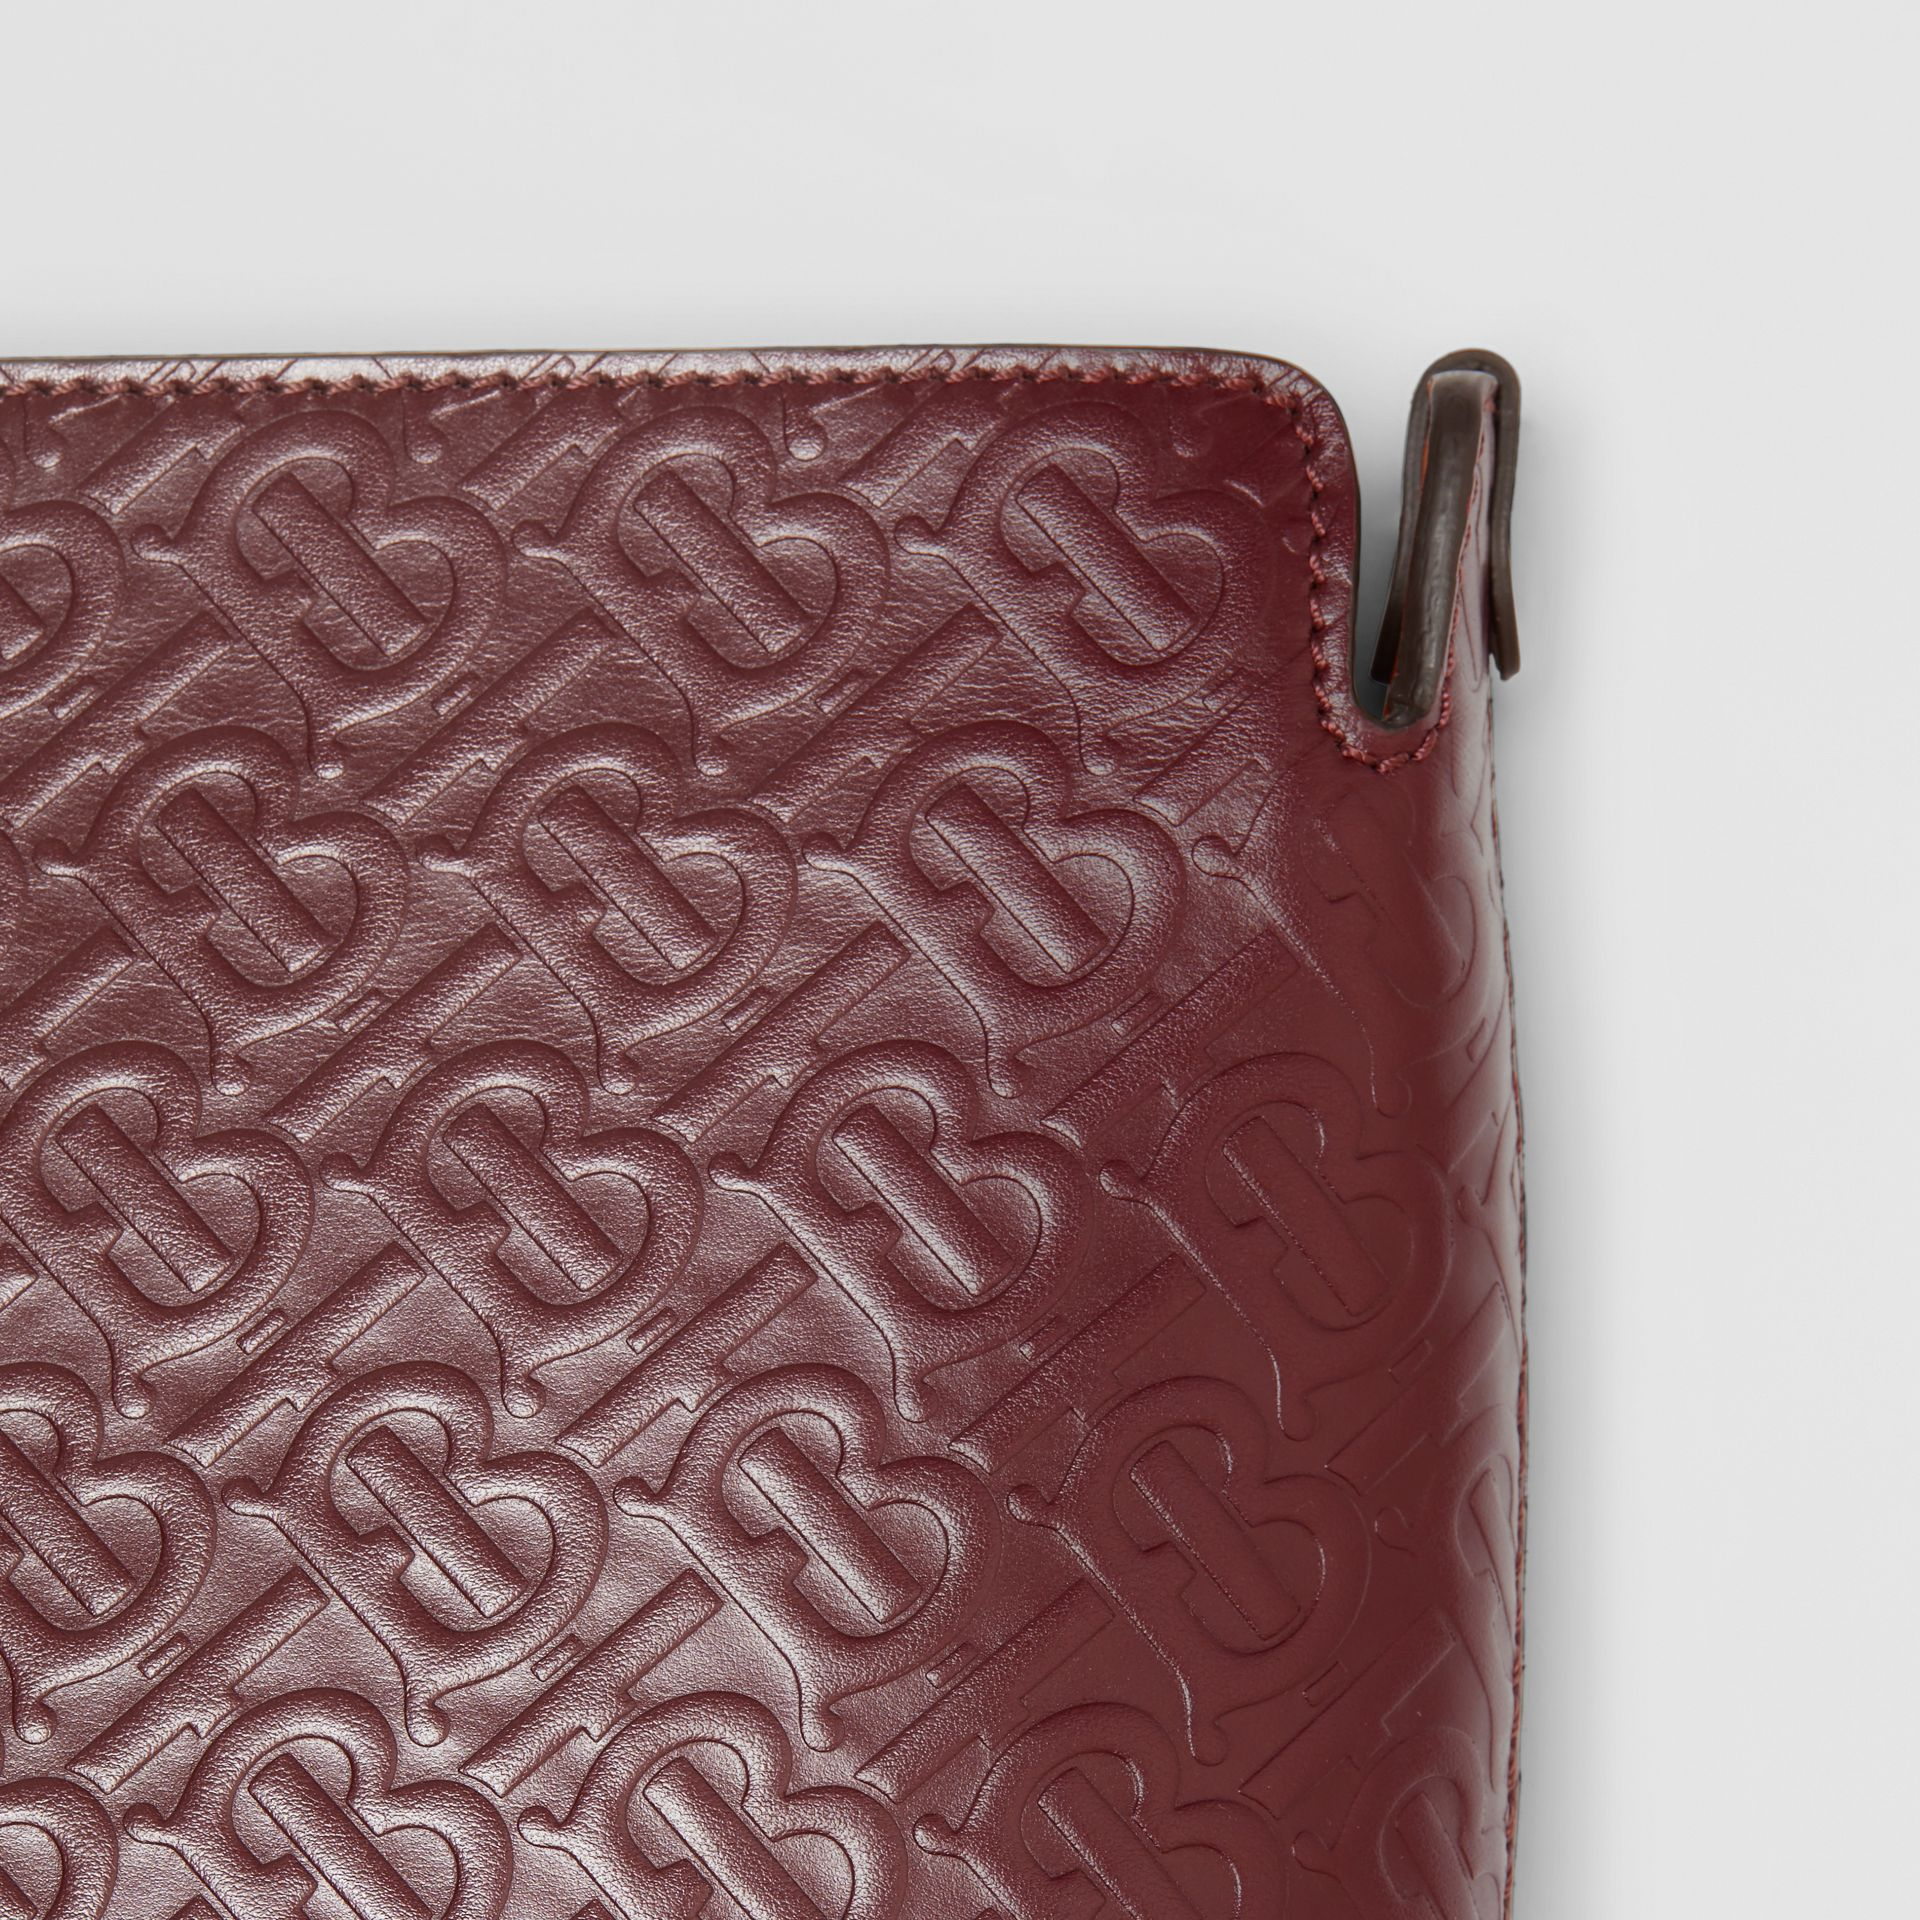 Medium Monogram Leather Clutch in Oxblood - Women | Burberry - gallery image 1